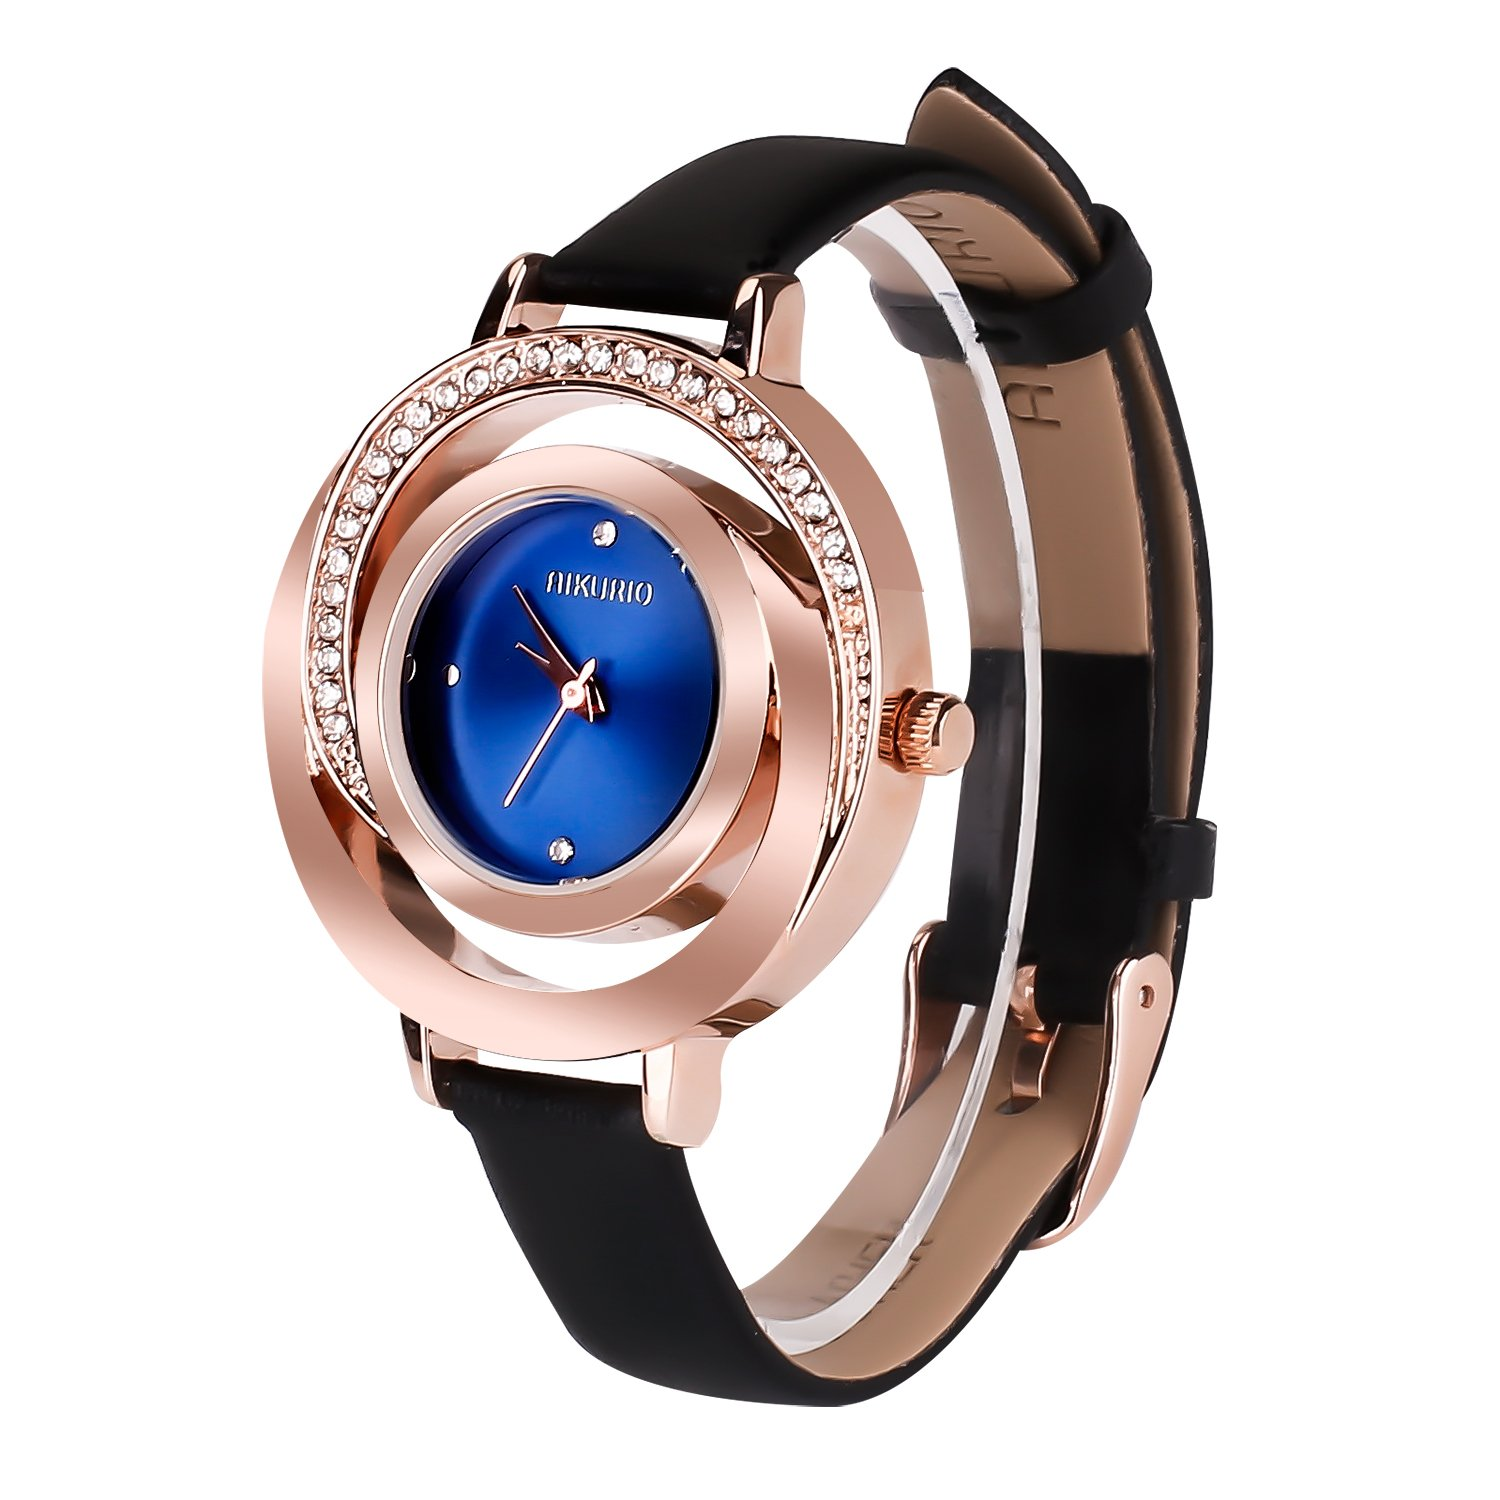 Women Ladies Wrist Watch Waterproof Design with Alloy Case Leather Strap and Japanese Movement (Black Band&Blue Case) by AIKURIO